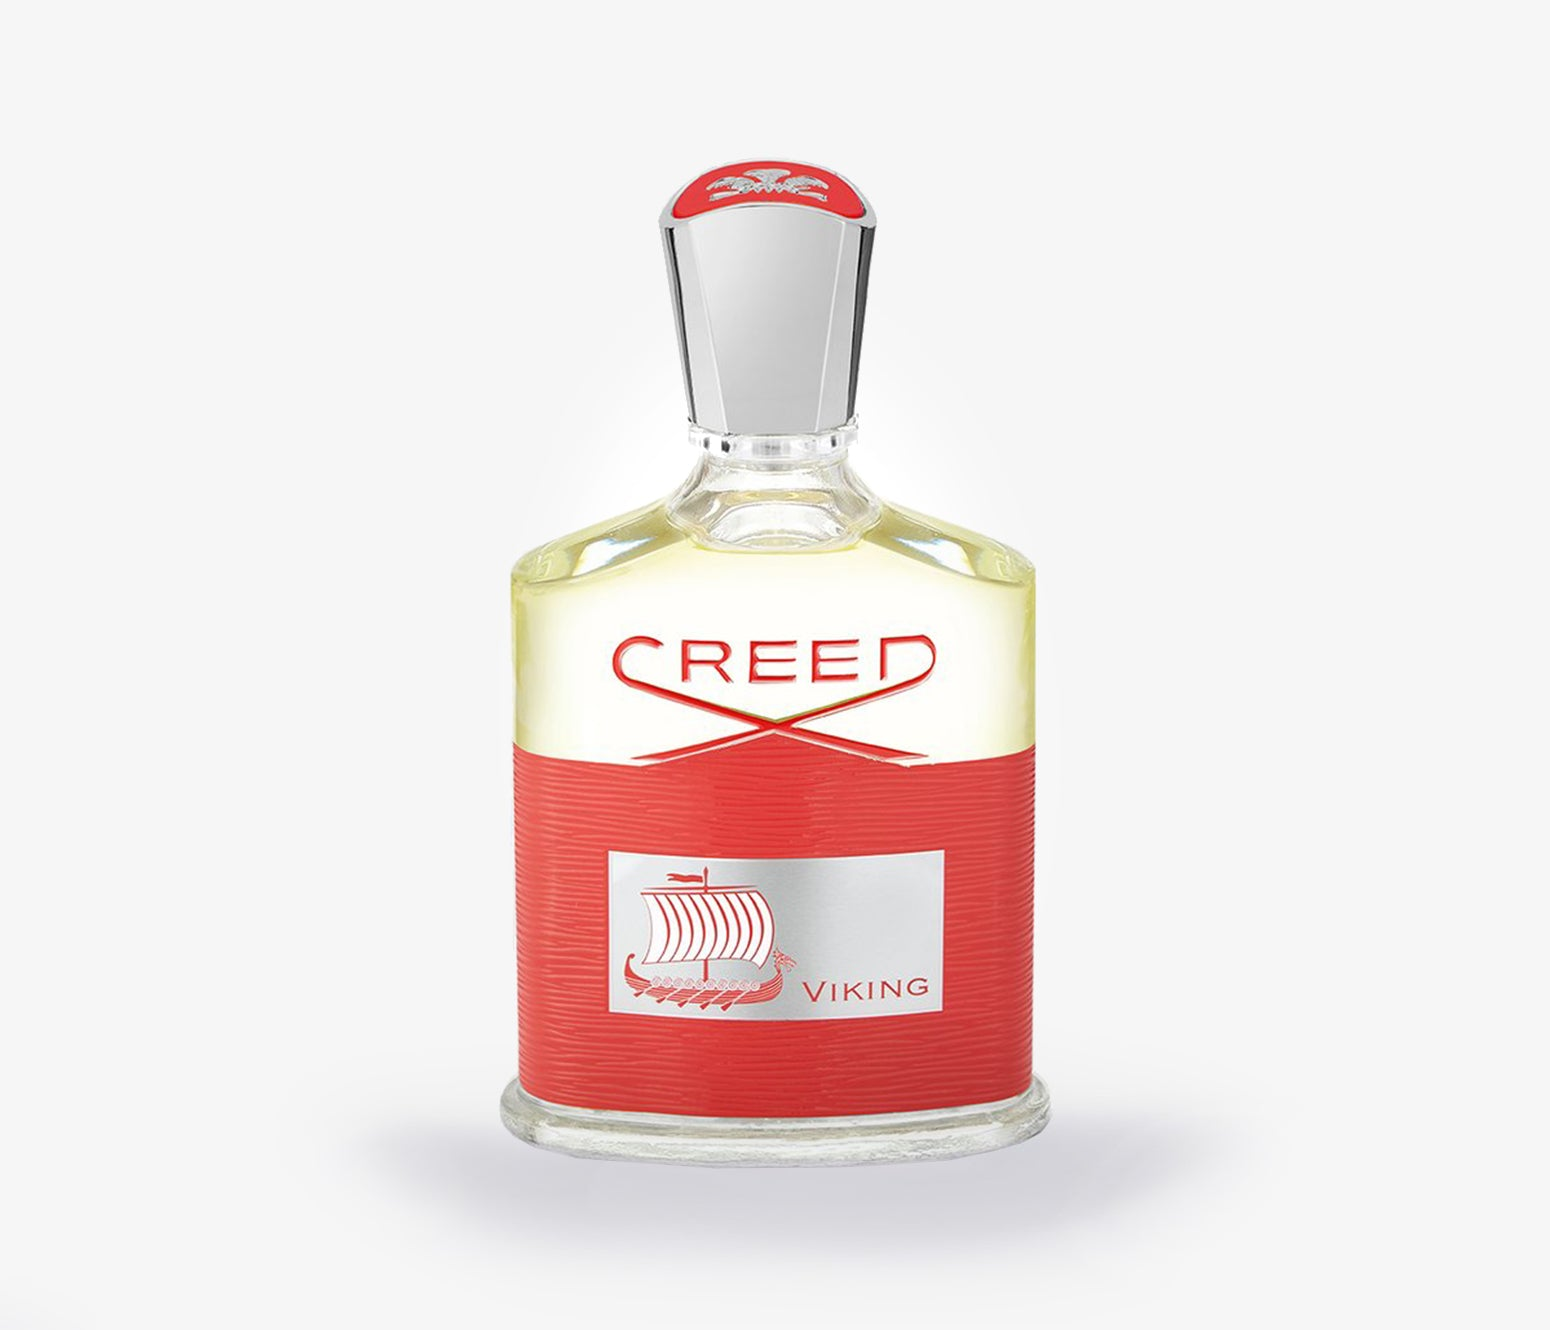 Creed - Viking - 50ml - QCU001 - product image - Fragrance - Les Senteurs